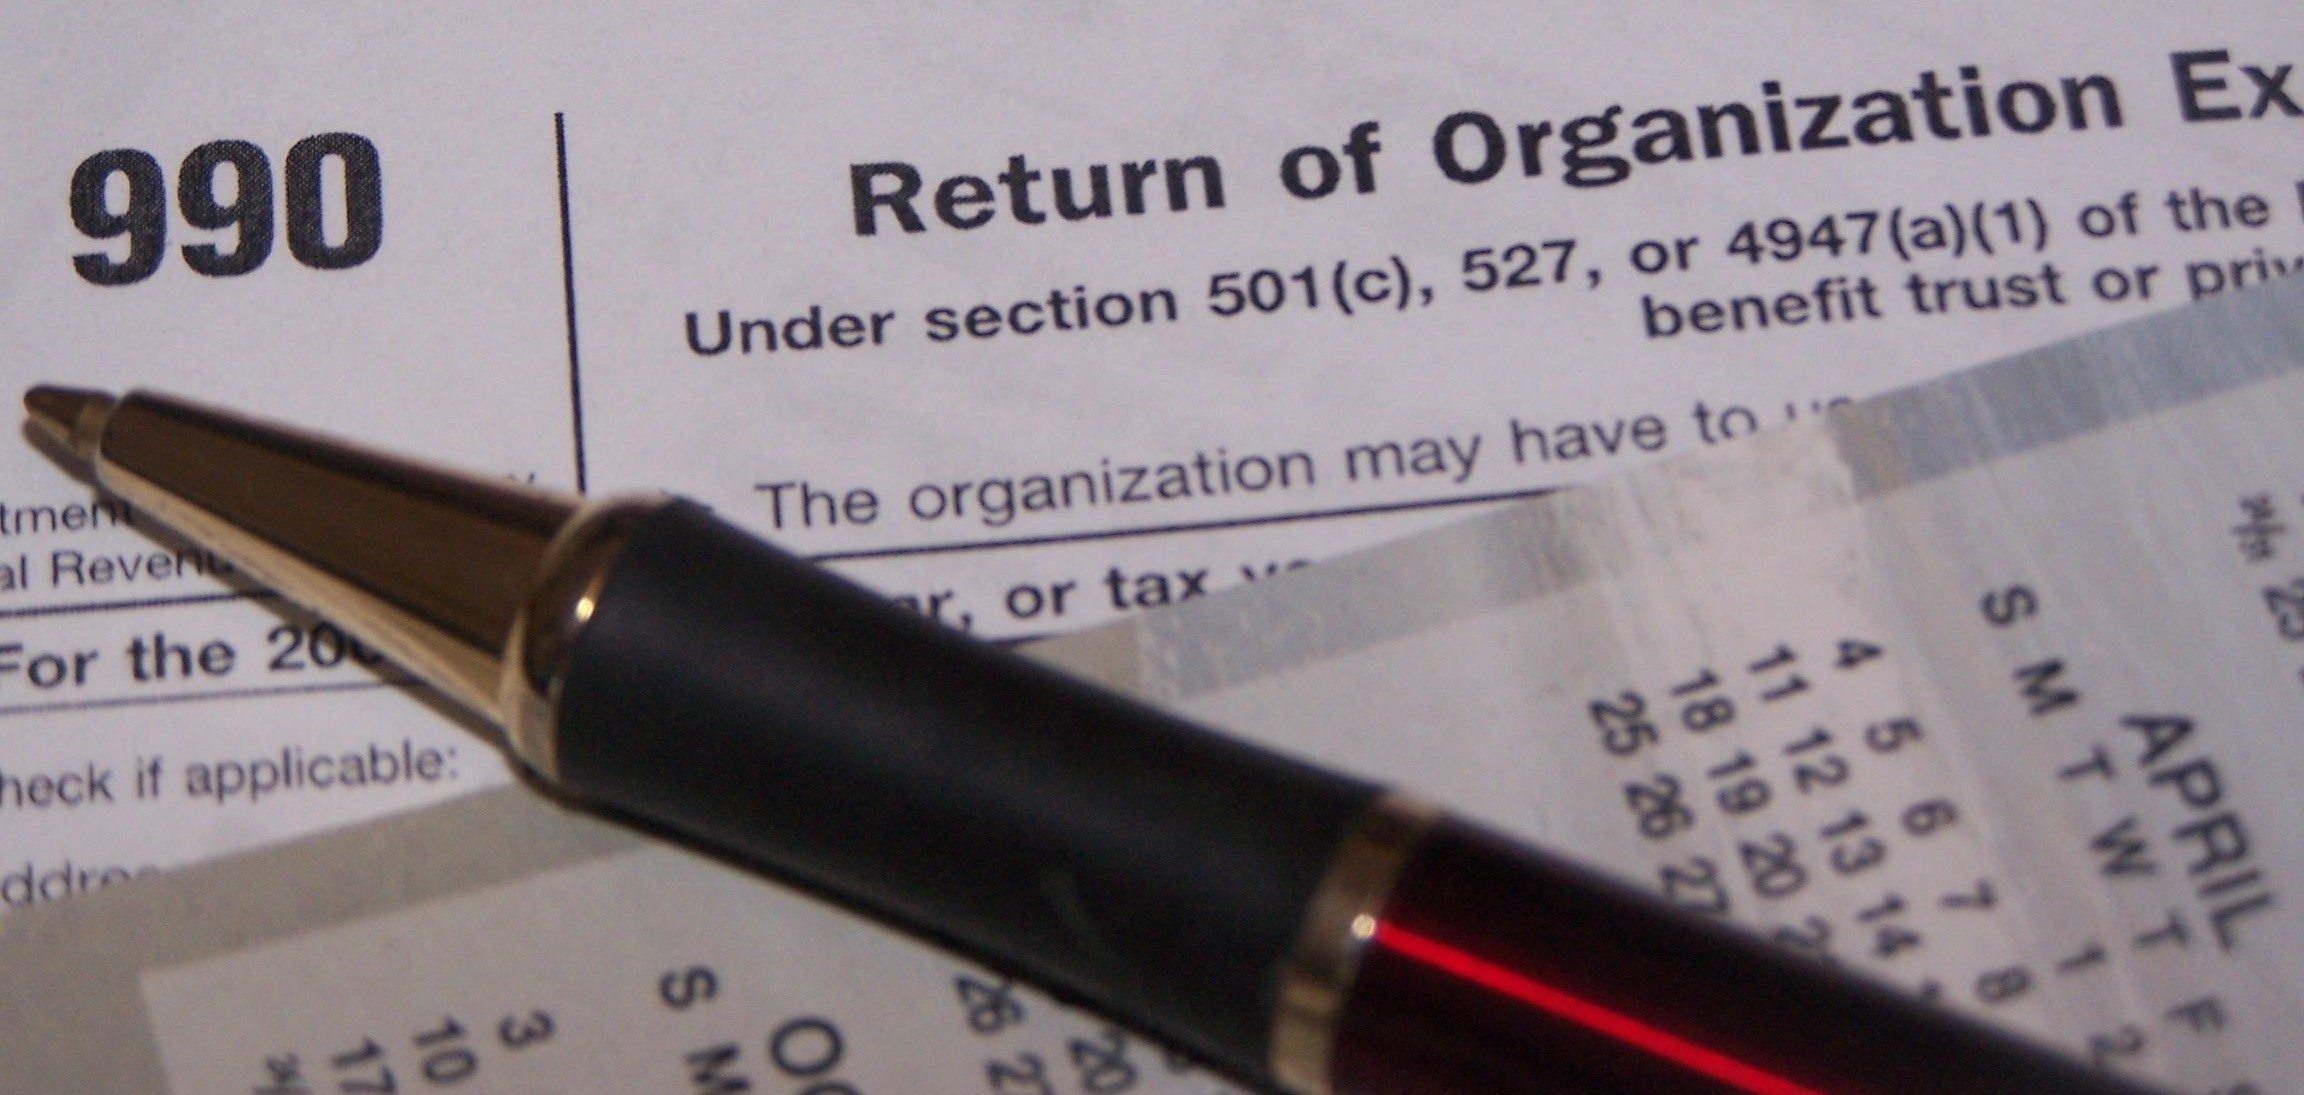 What Is Irs Form 990